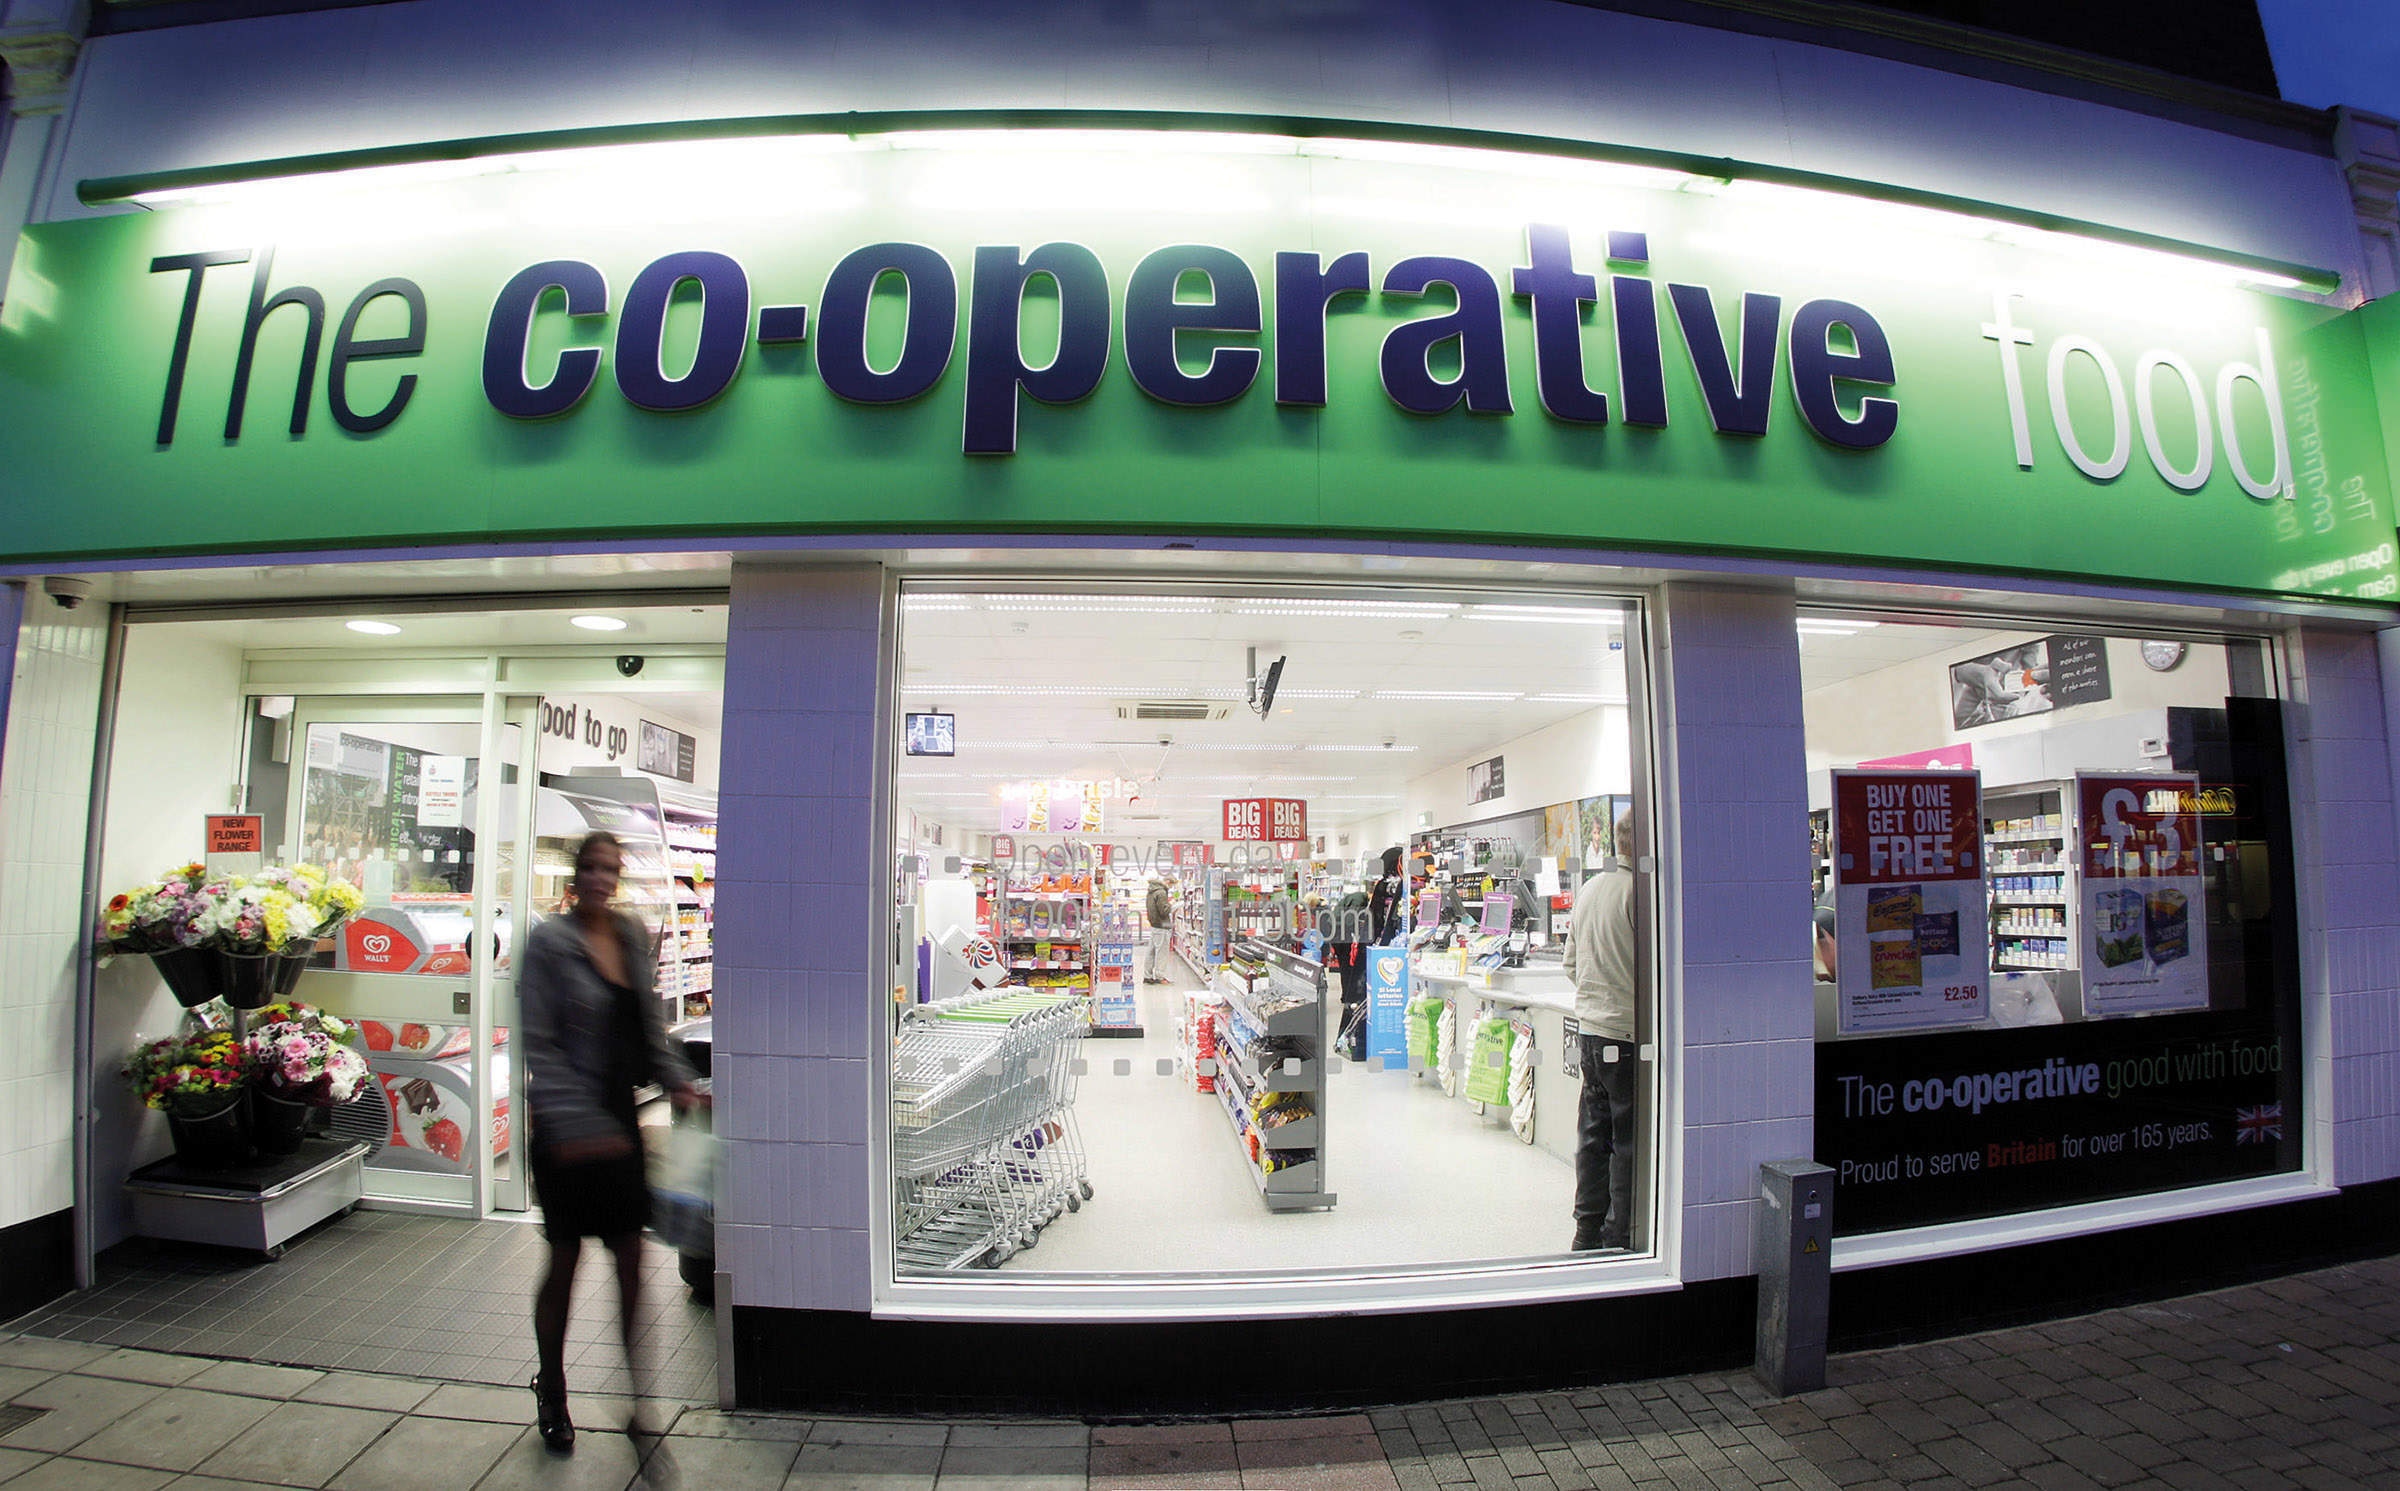 Want to really change politics? Look to cooperatives